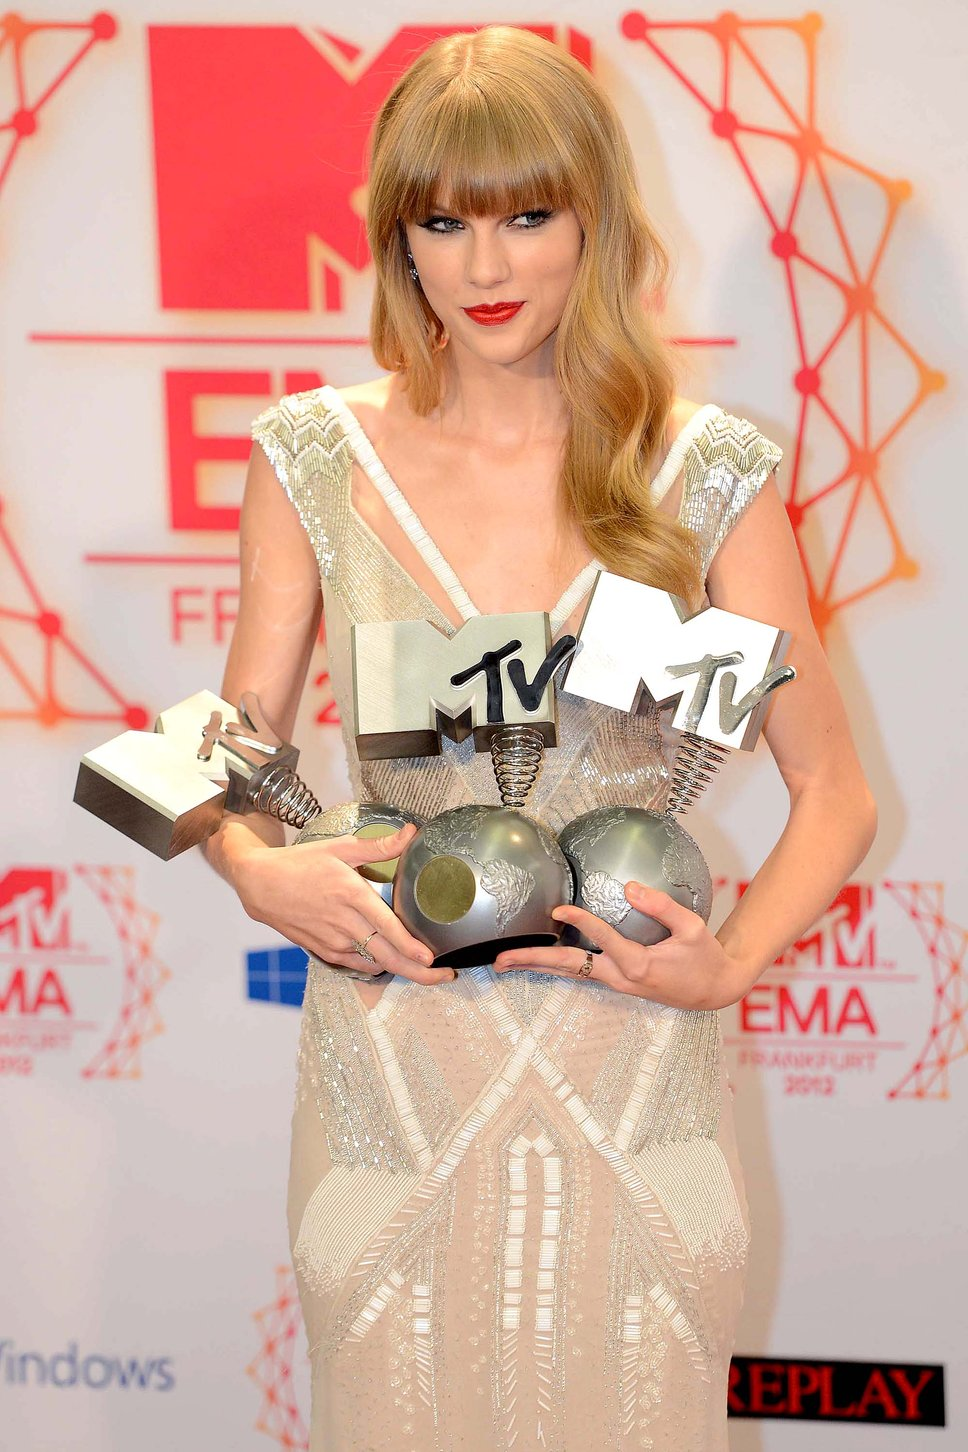 List of awards and nominations received by Taylor Swift